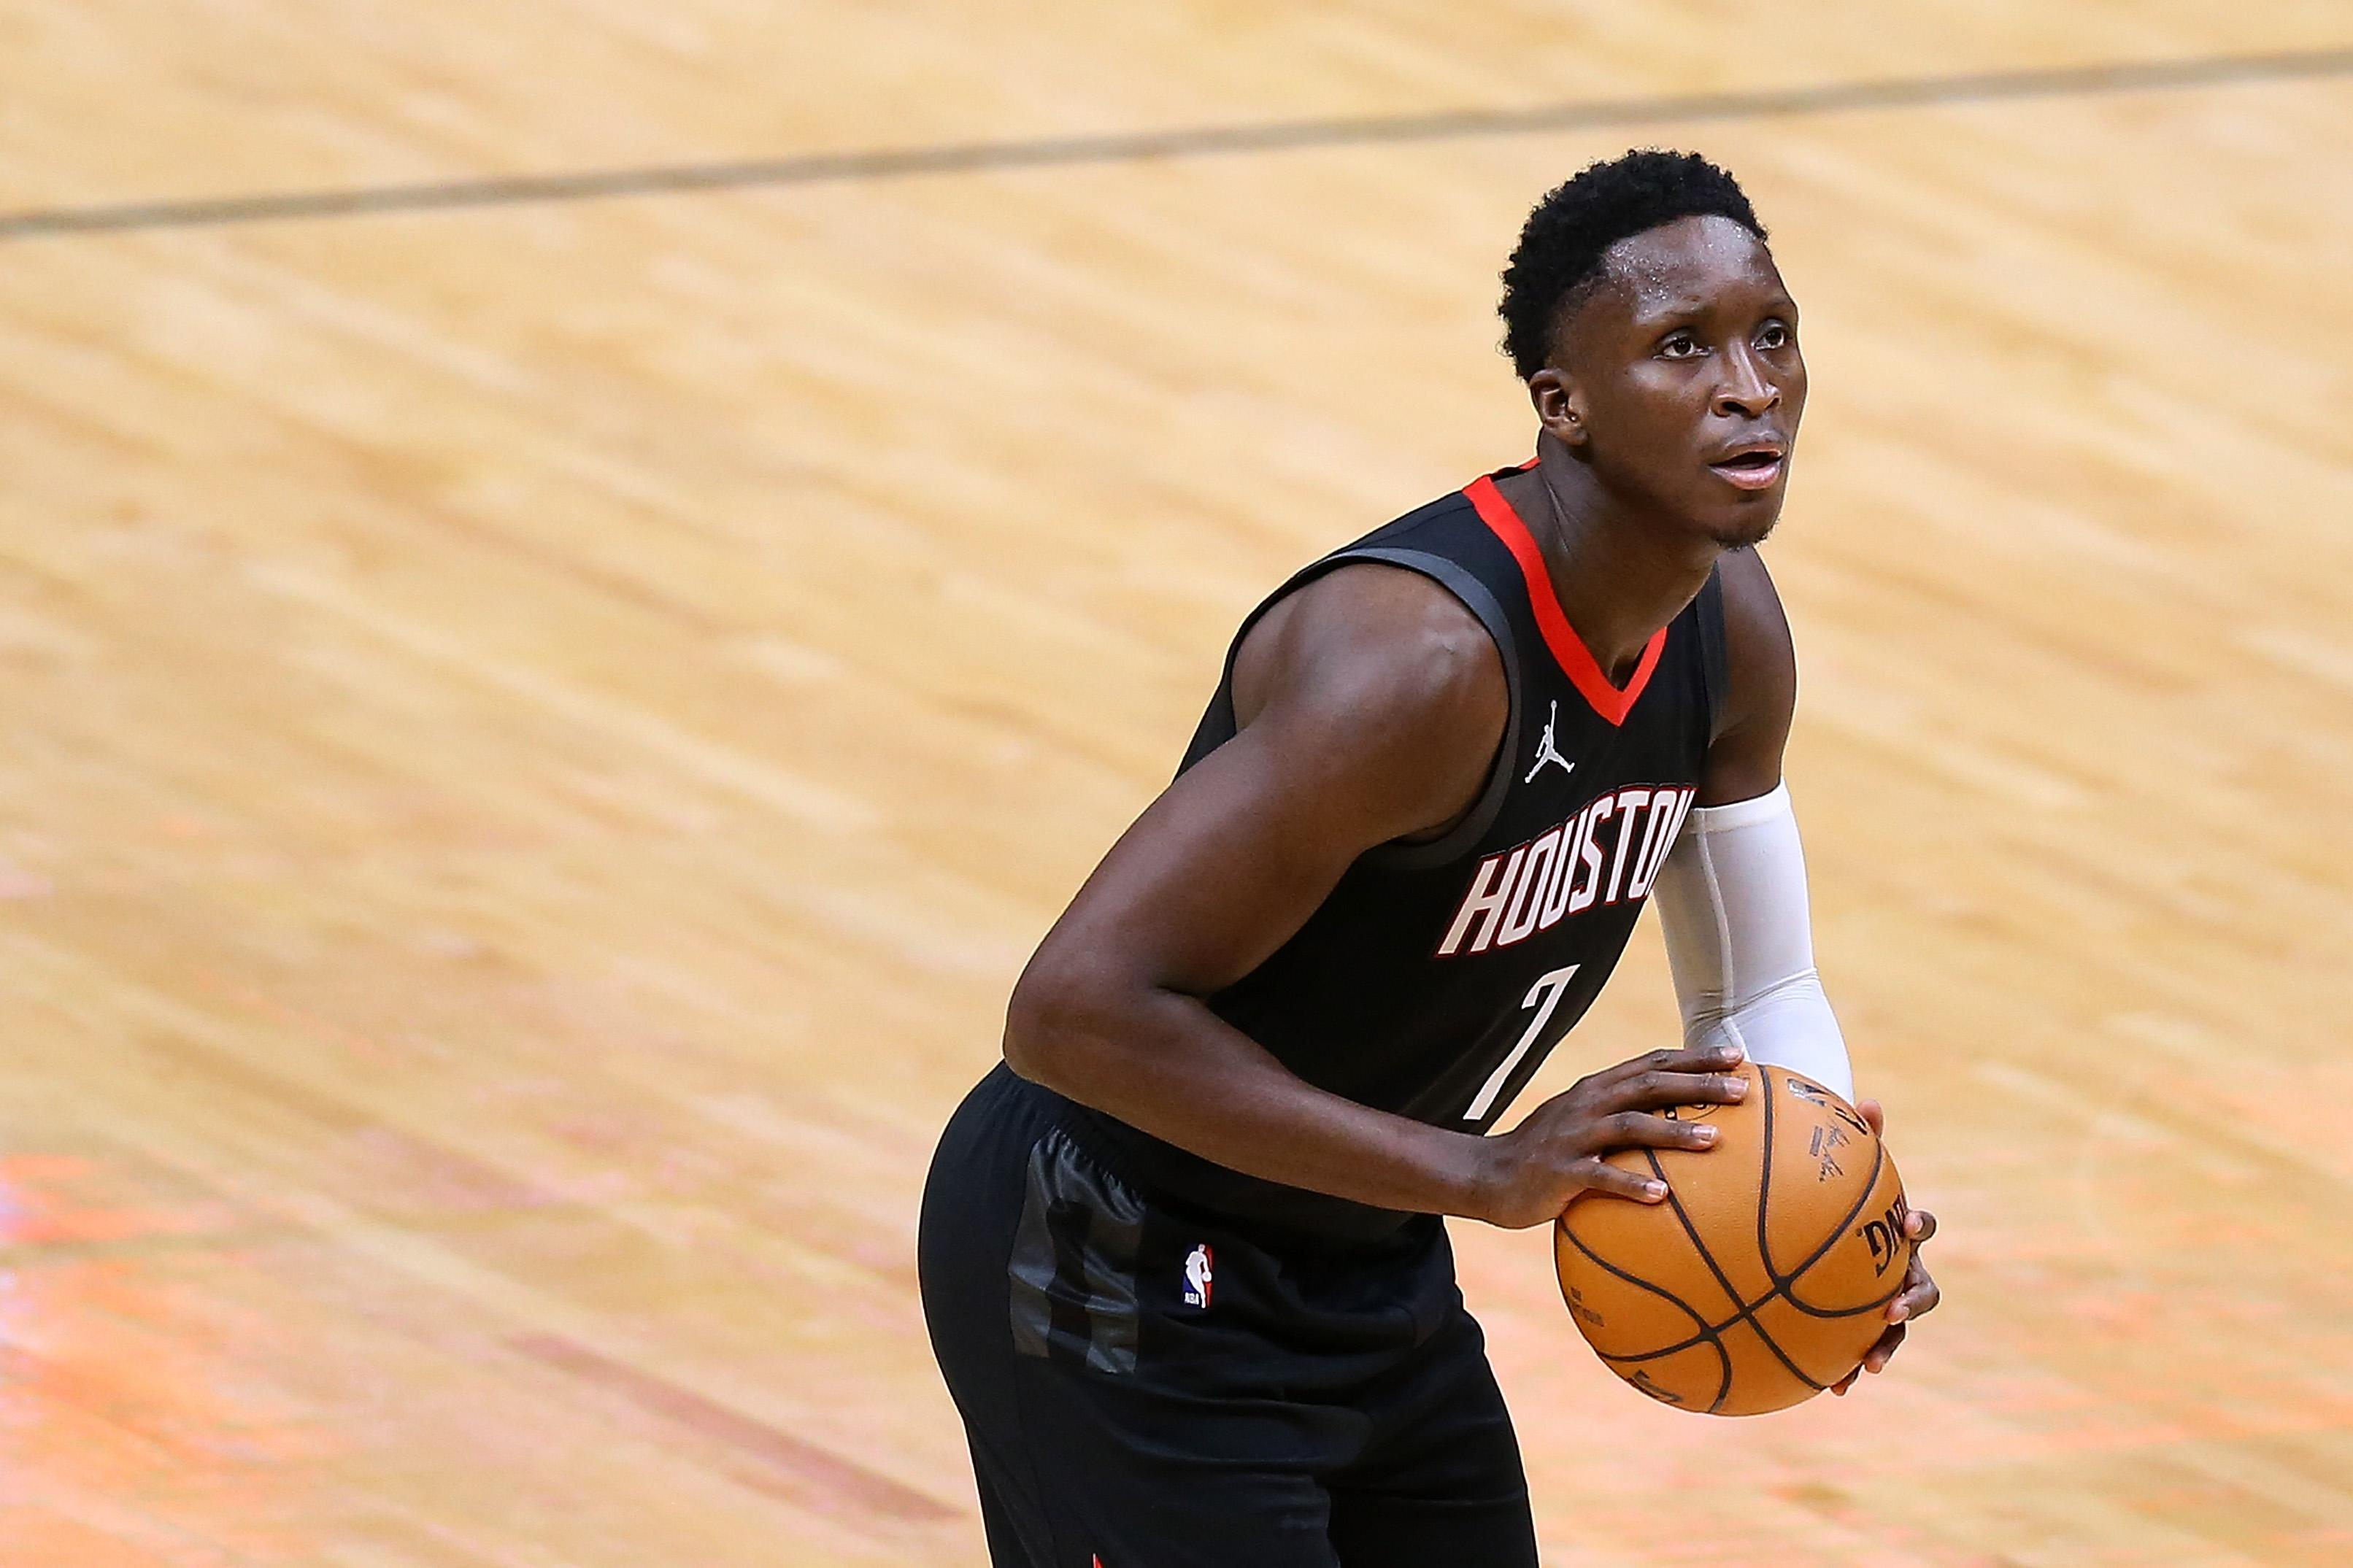 Victor Oladipo #7 of the Houston Rockets